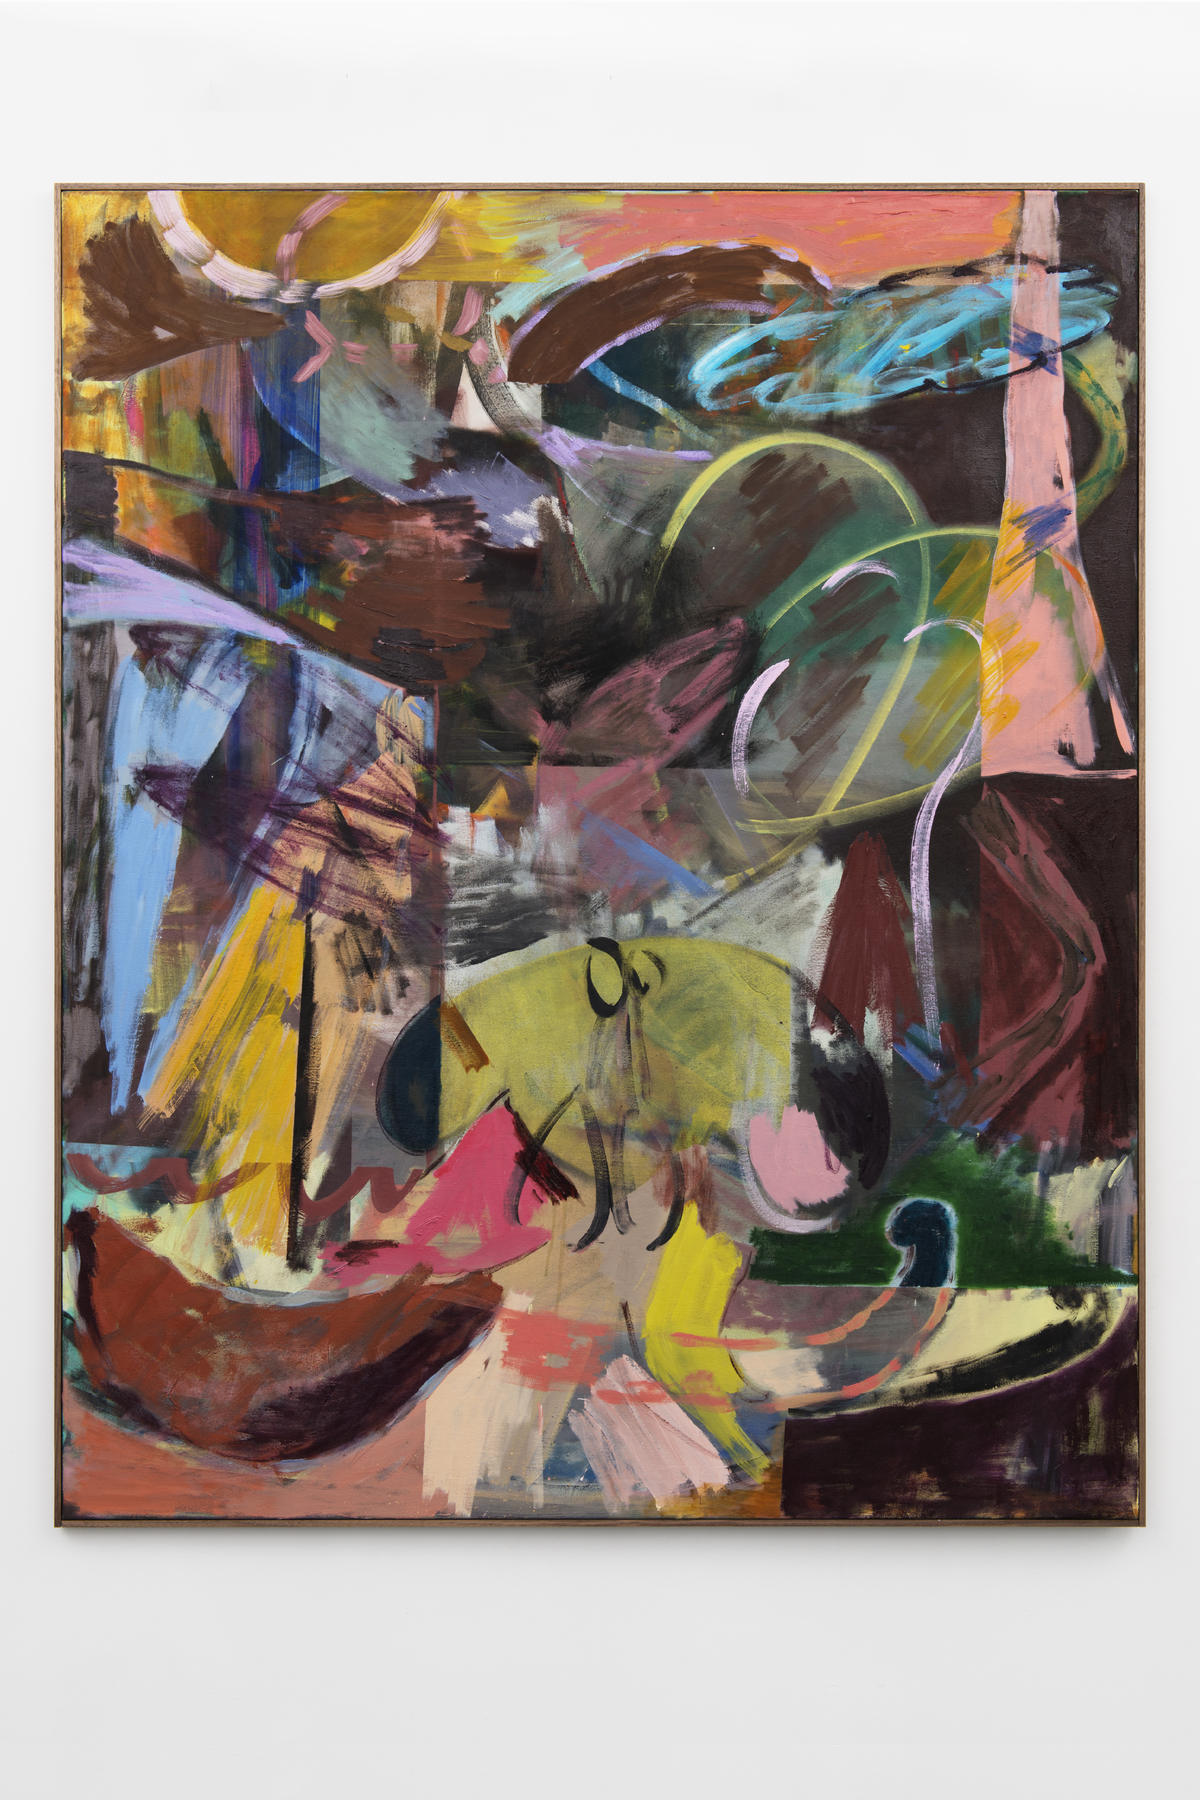 1-Jon-Pilkington-To-Be-Titled-Oil, wax crayon and lacquer on canvas -image courtesy CINNNAMON Rotterdam